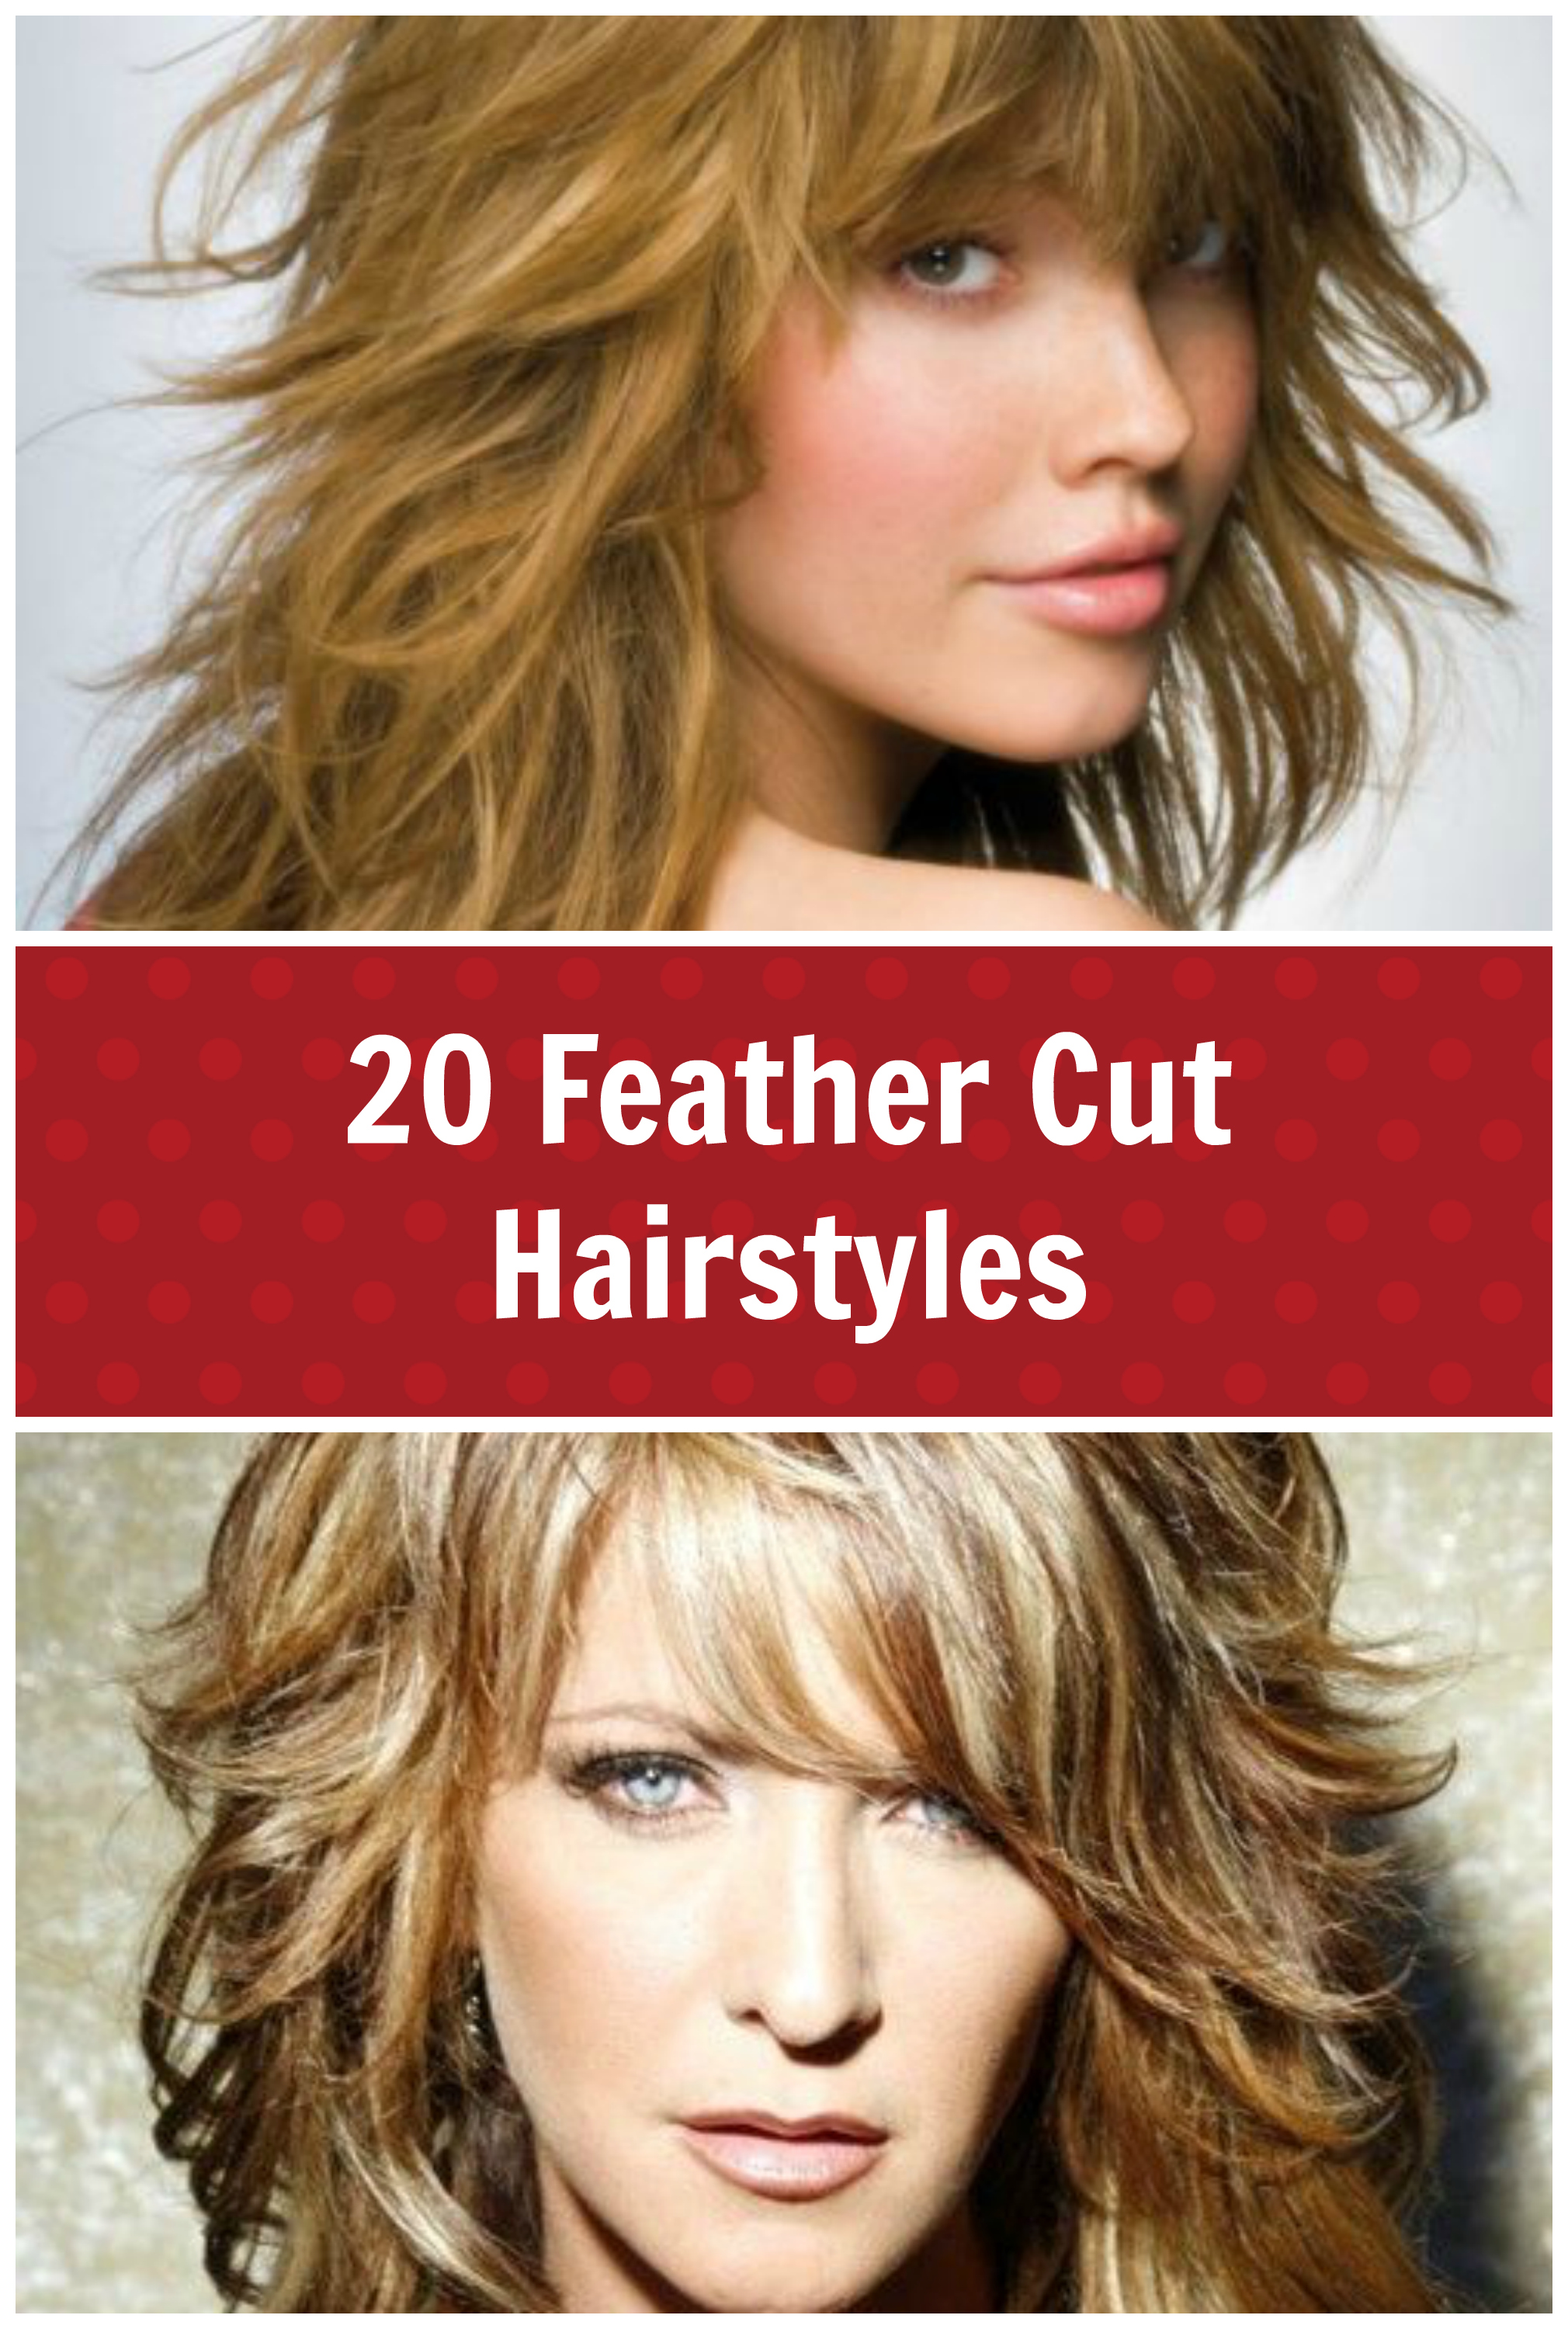 20 Feather Cut Hairstyles For Long, Medium, and Short Hair ...